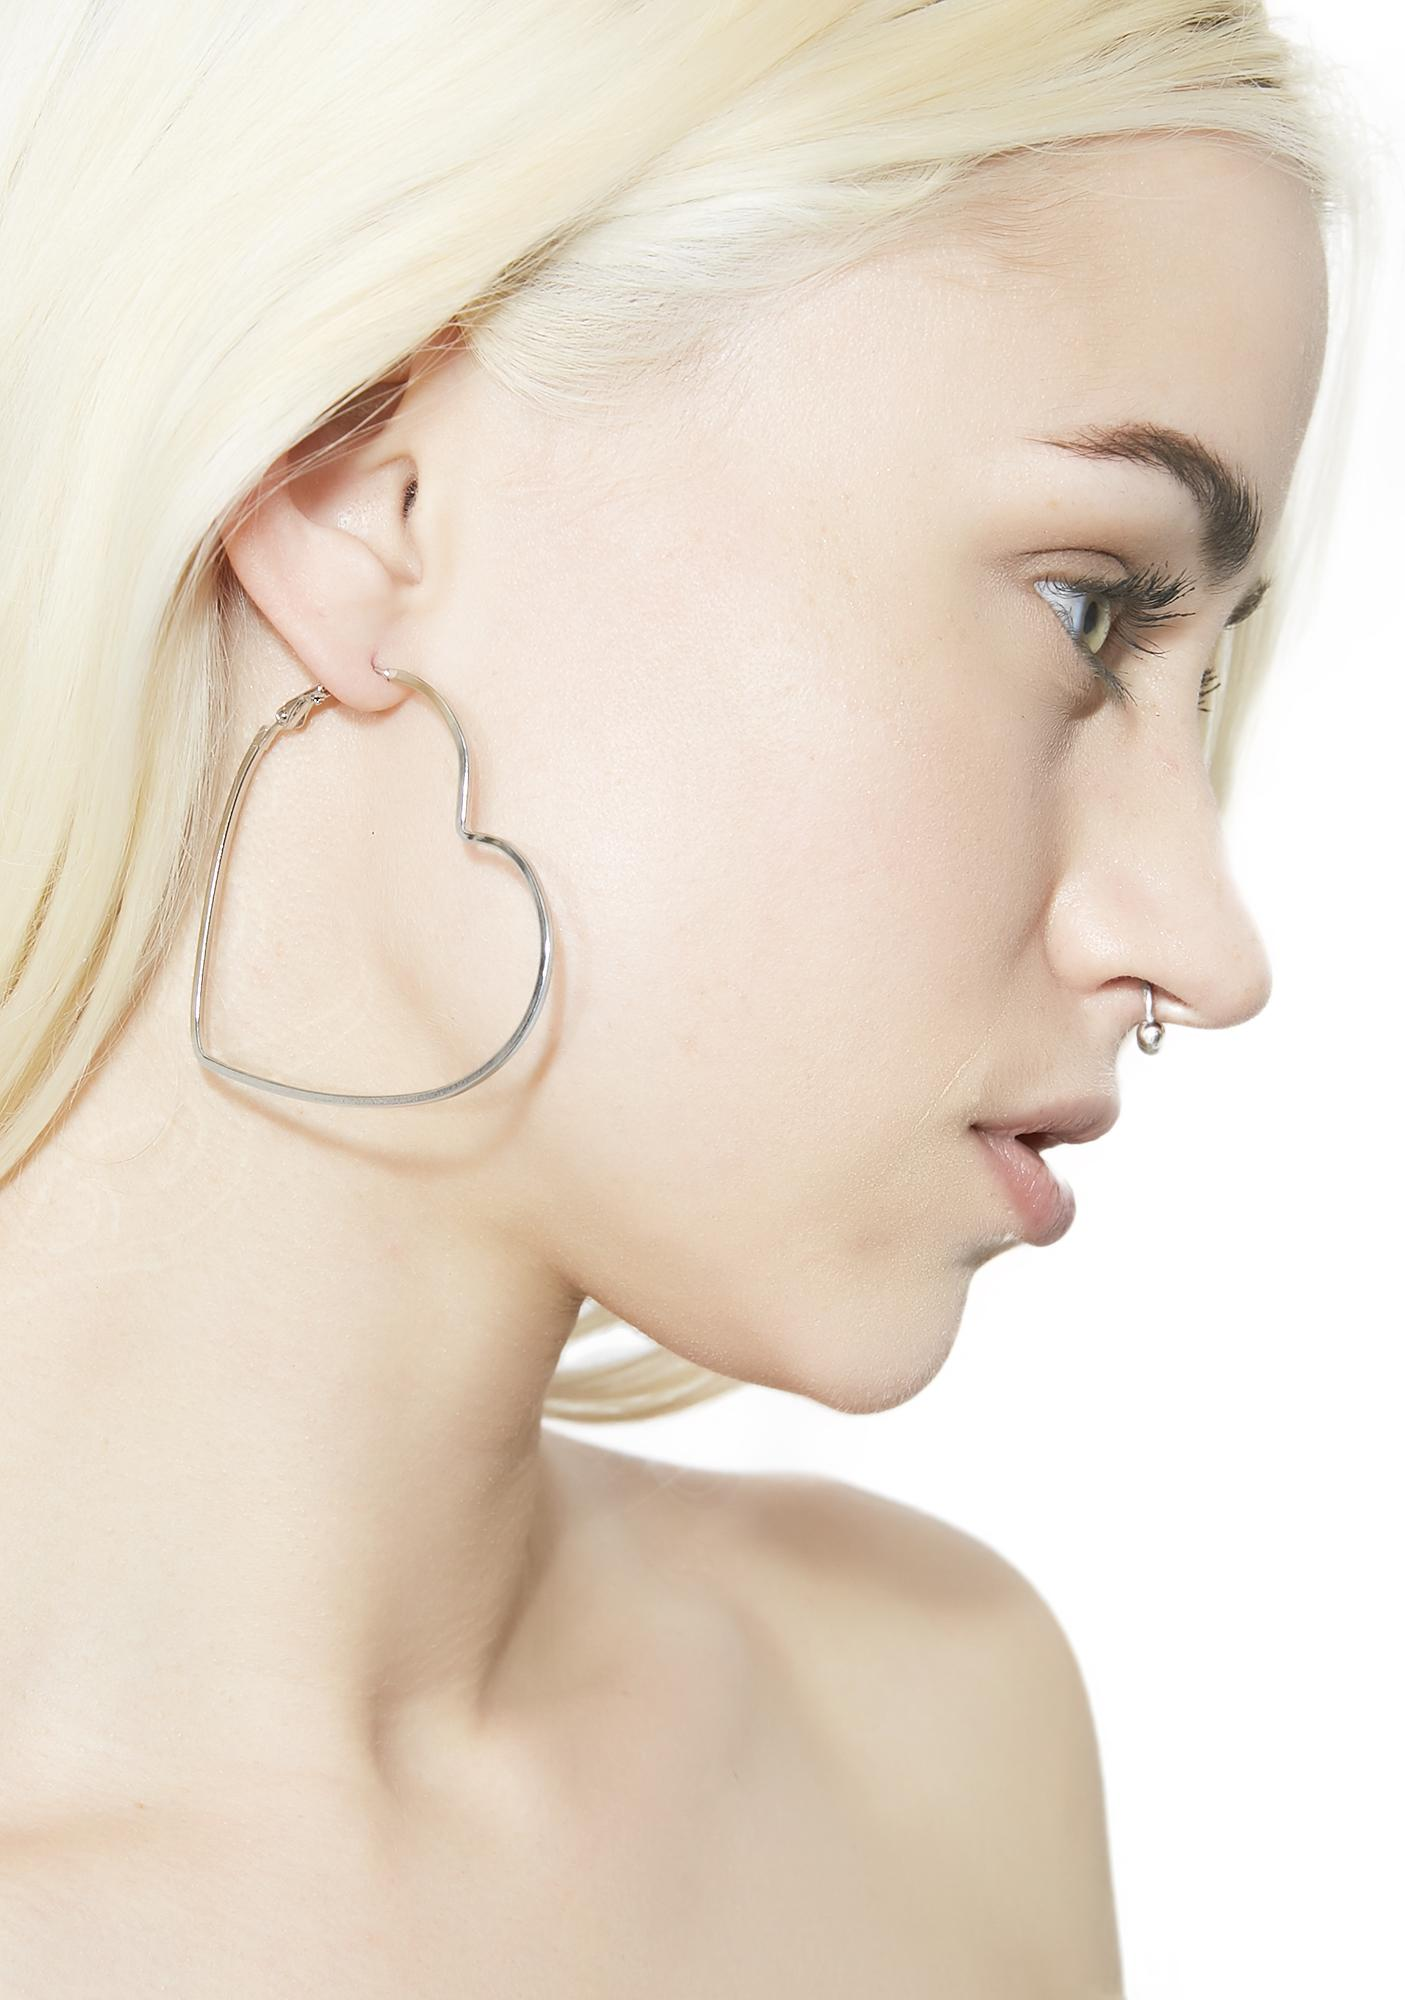 p cat round earringsfor metal face women romwe earrings shaped drop